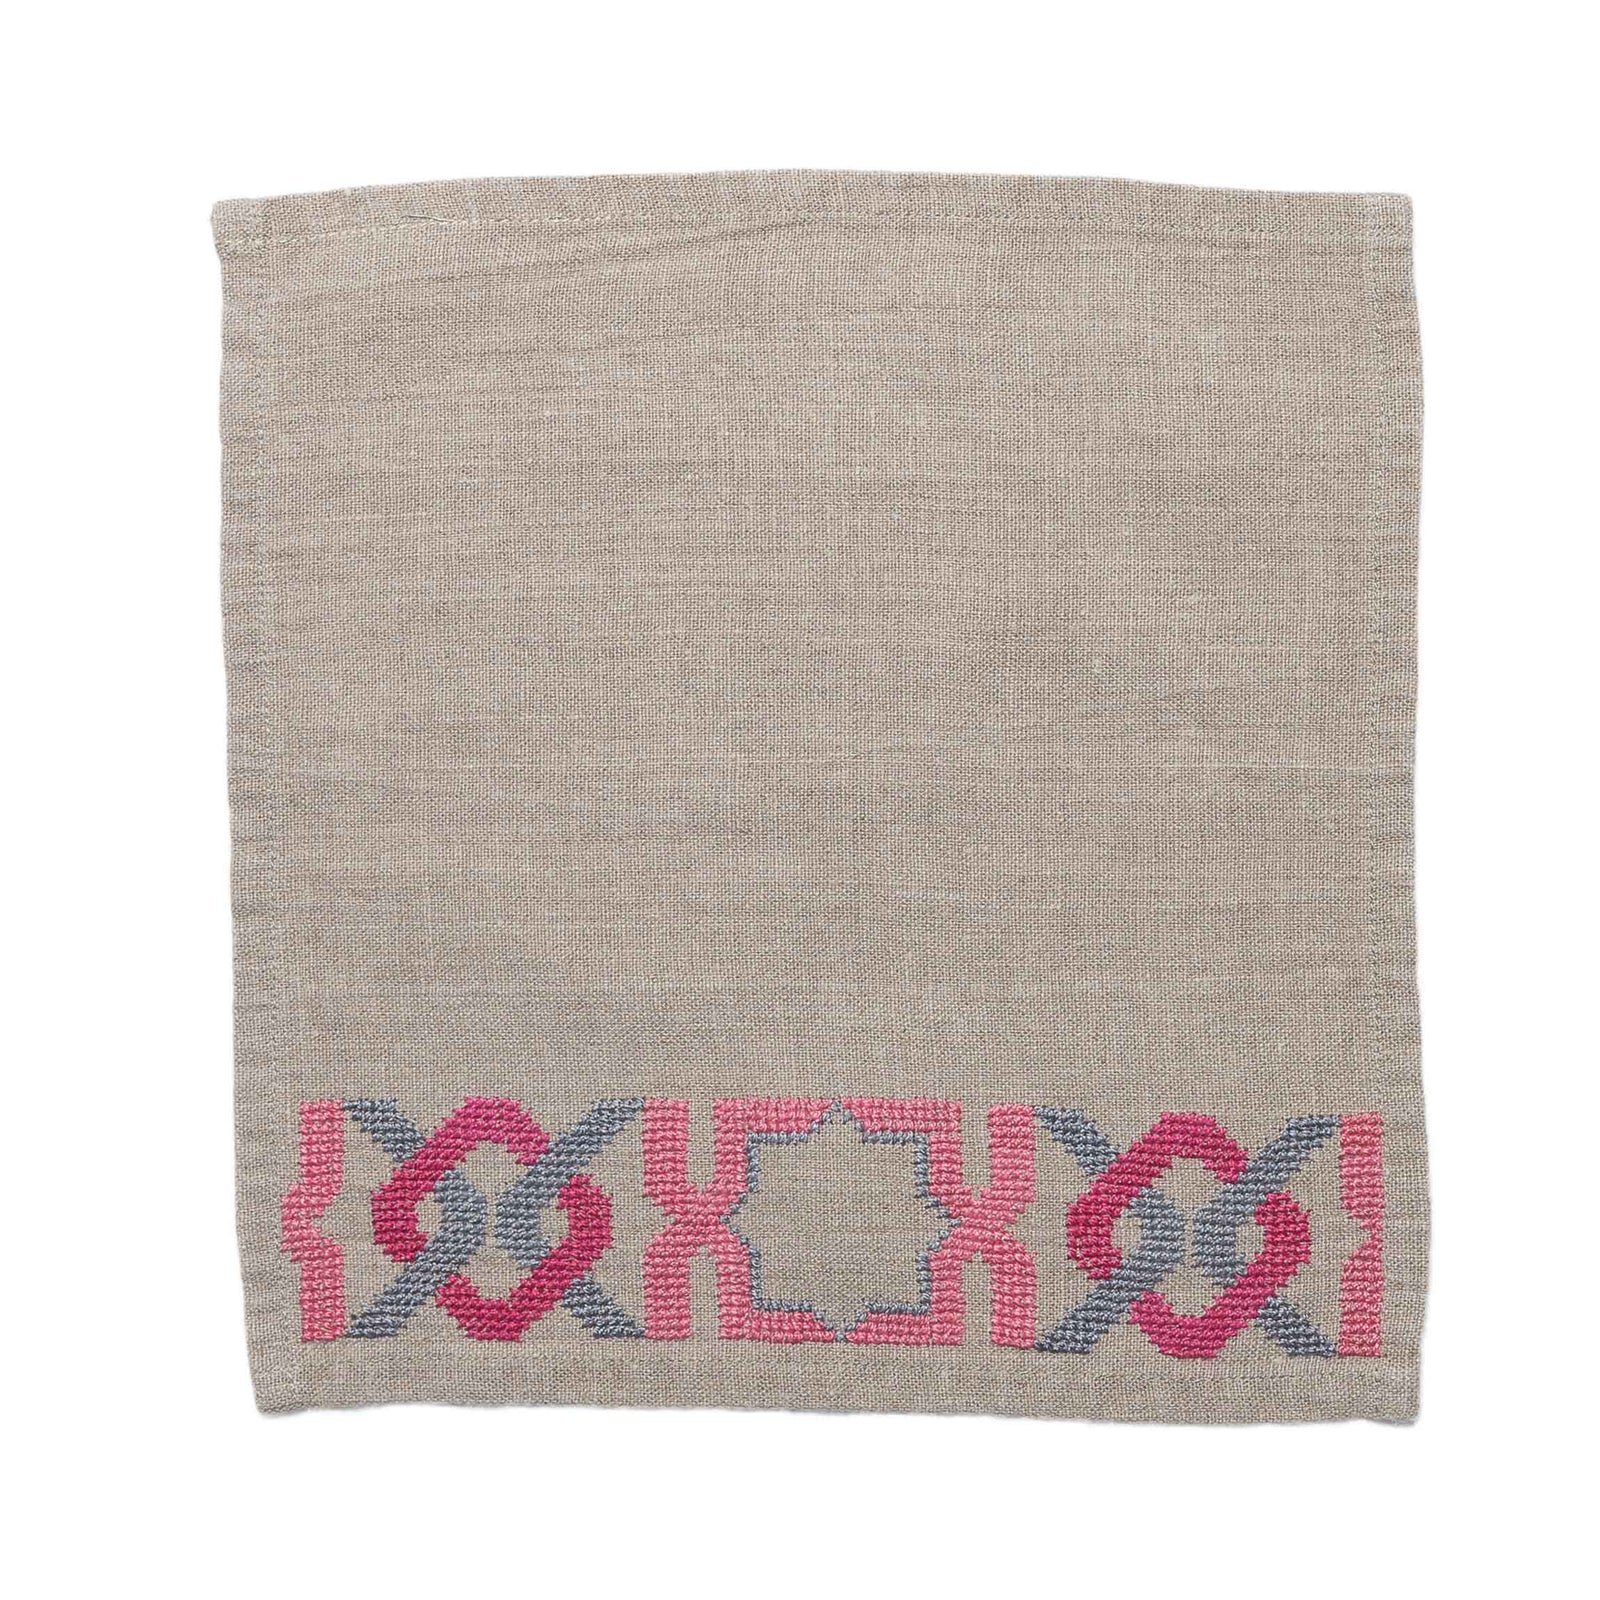 SOFTENED LINEN TOWEL SUNSET PINK ALHAMBRA®